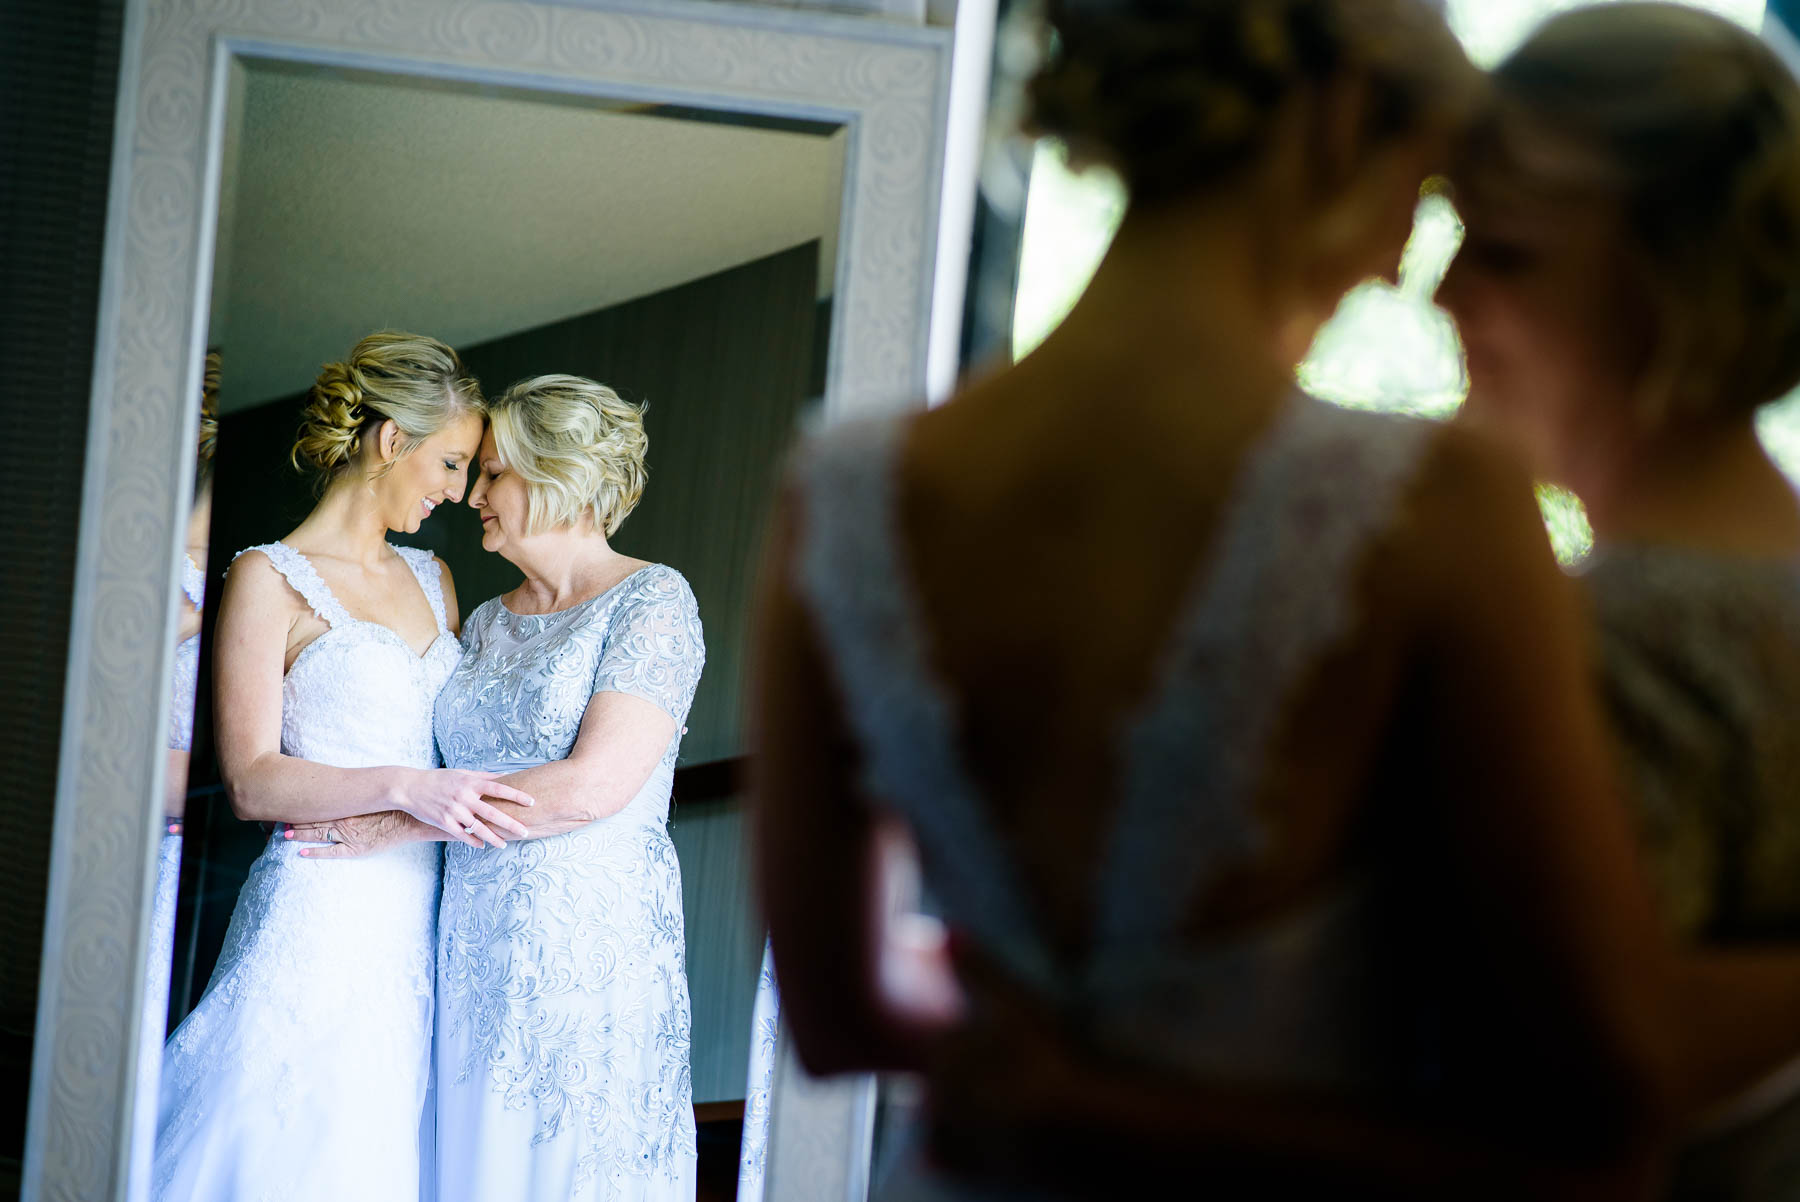 Tender emotional moment between mother and bride before a St. Charles Country Club wedding.